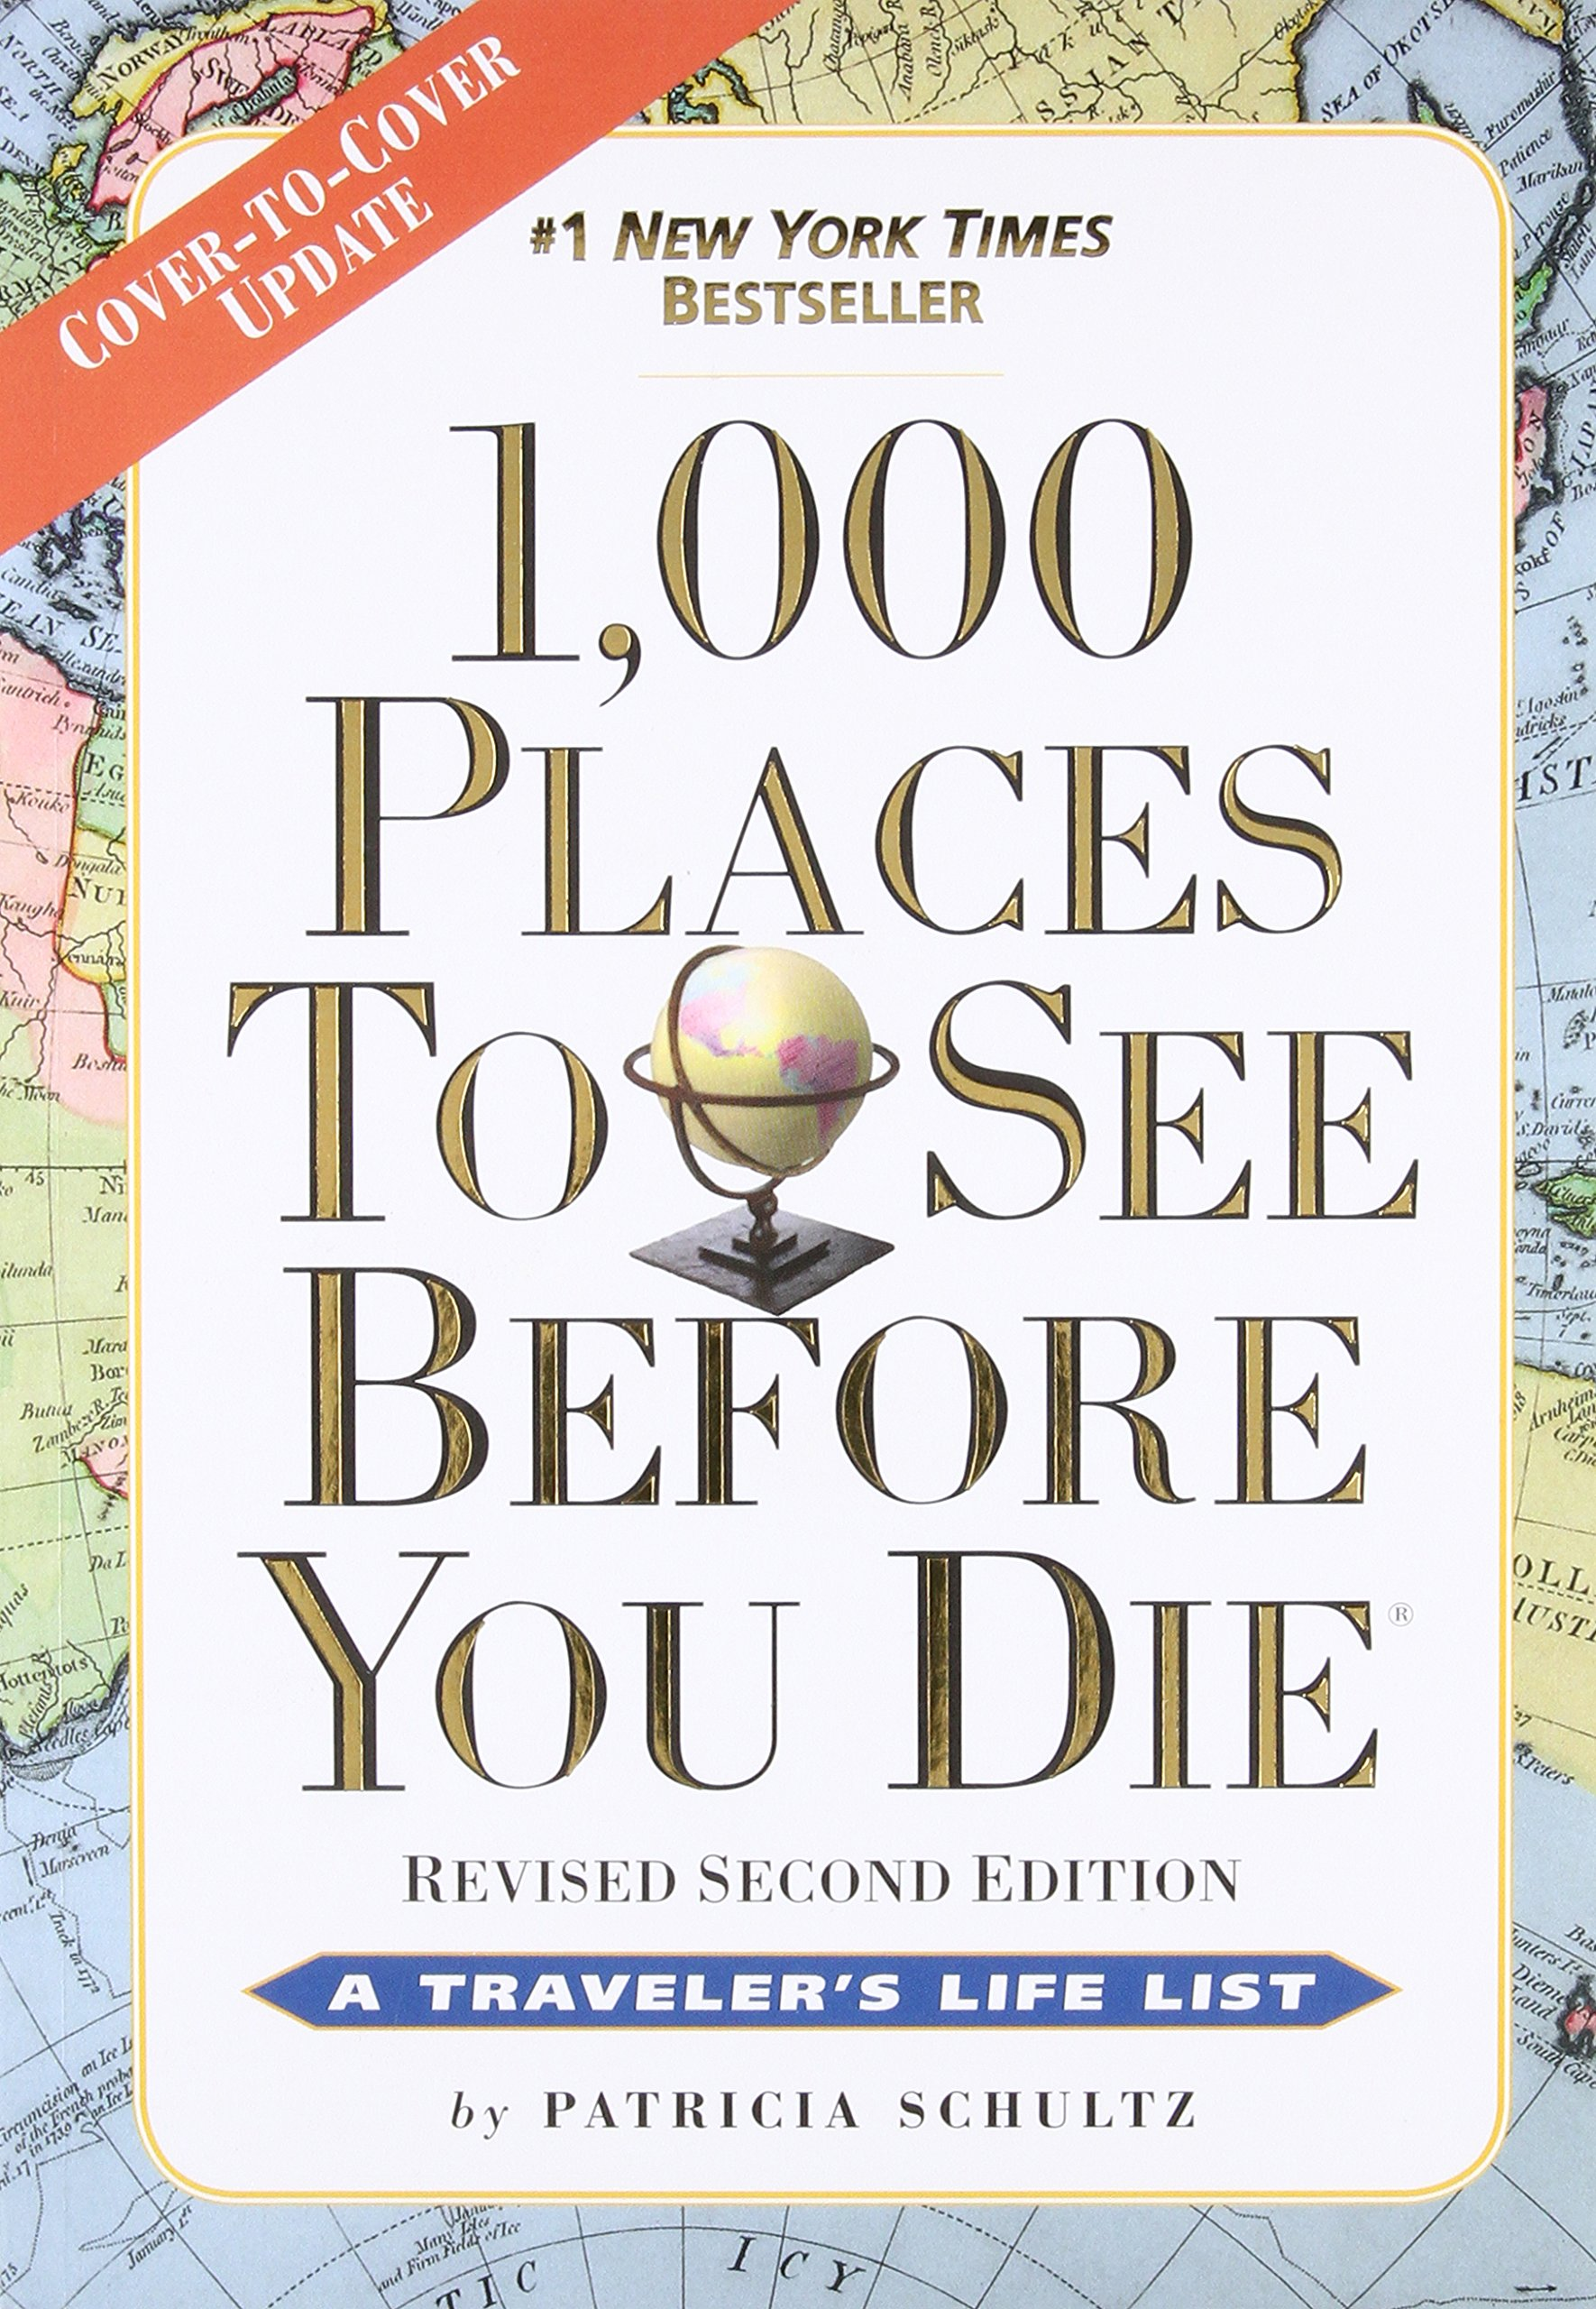 1, 000 Places to See Before You Die: Revised Second Edition: Patricia  Schultz: 8601404426711: Amazon.com: Books